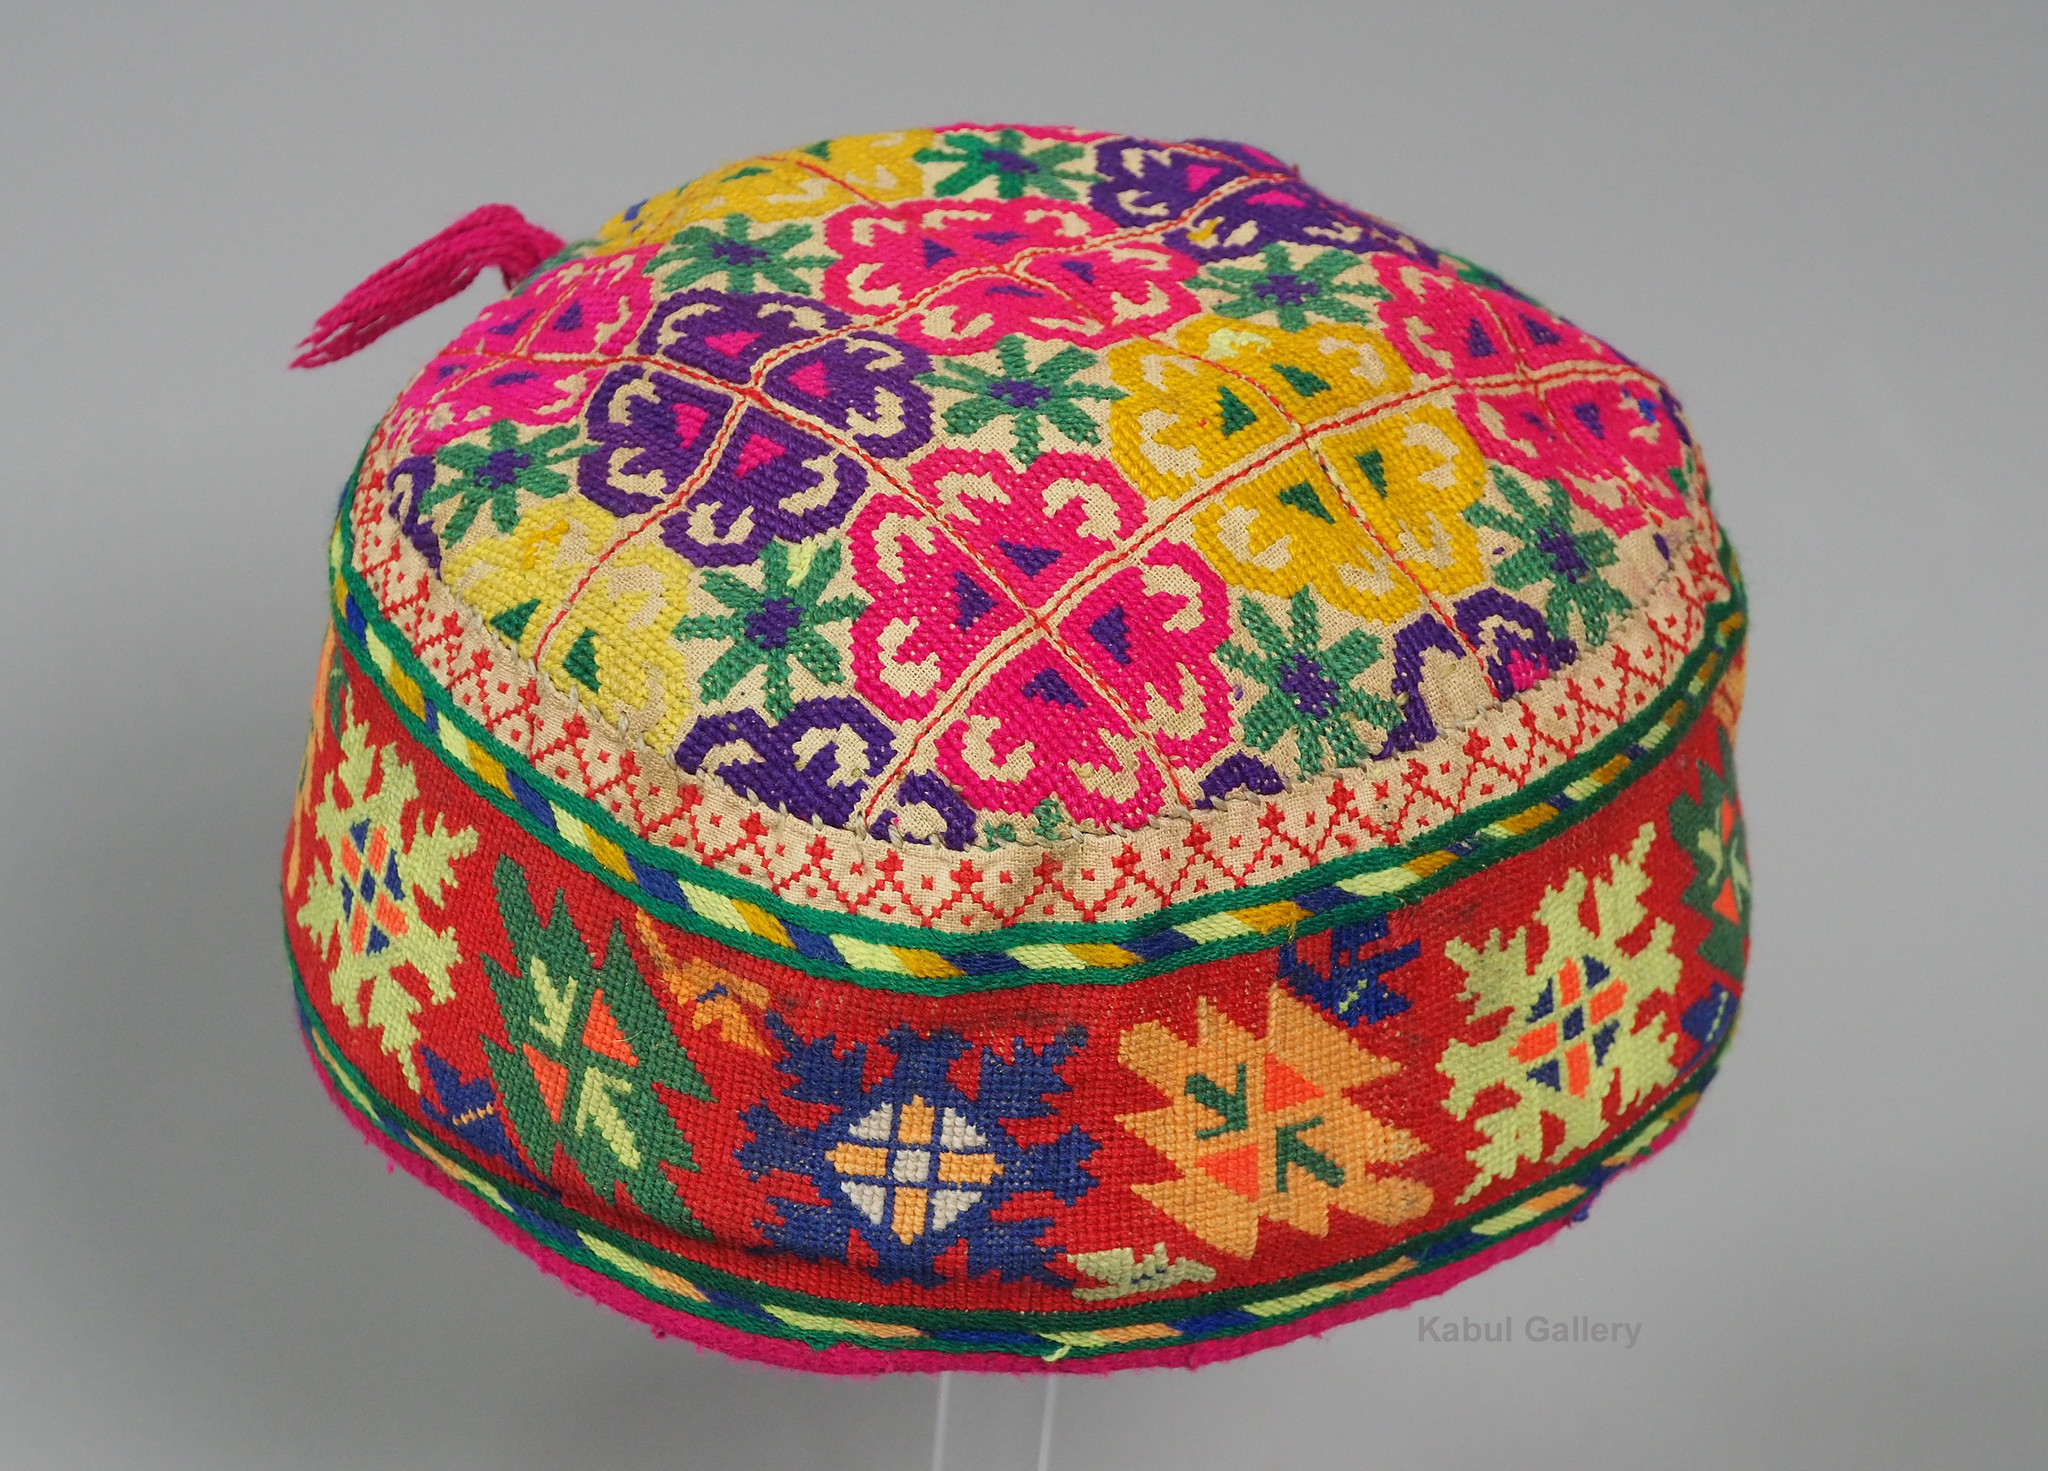 hand embroidered Women's Caps and Ceremonial Headdress from Gilgit-Baltistan No:21/H